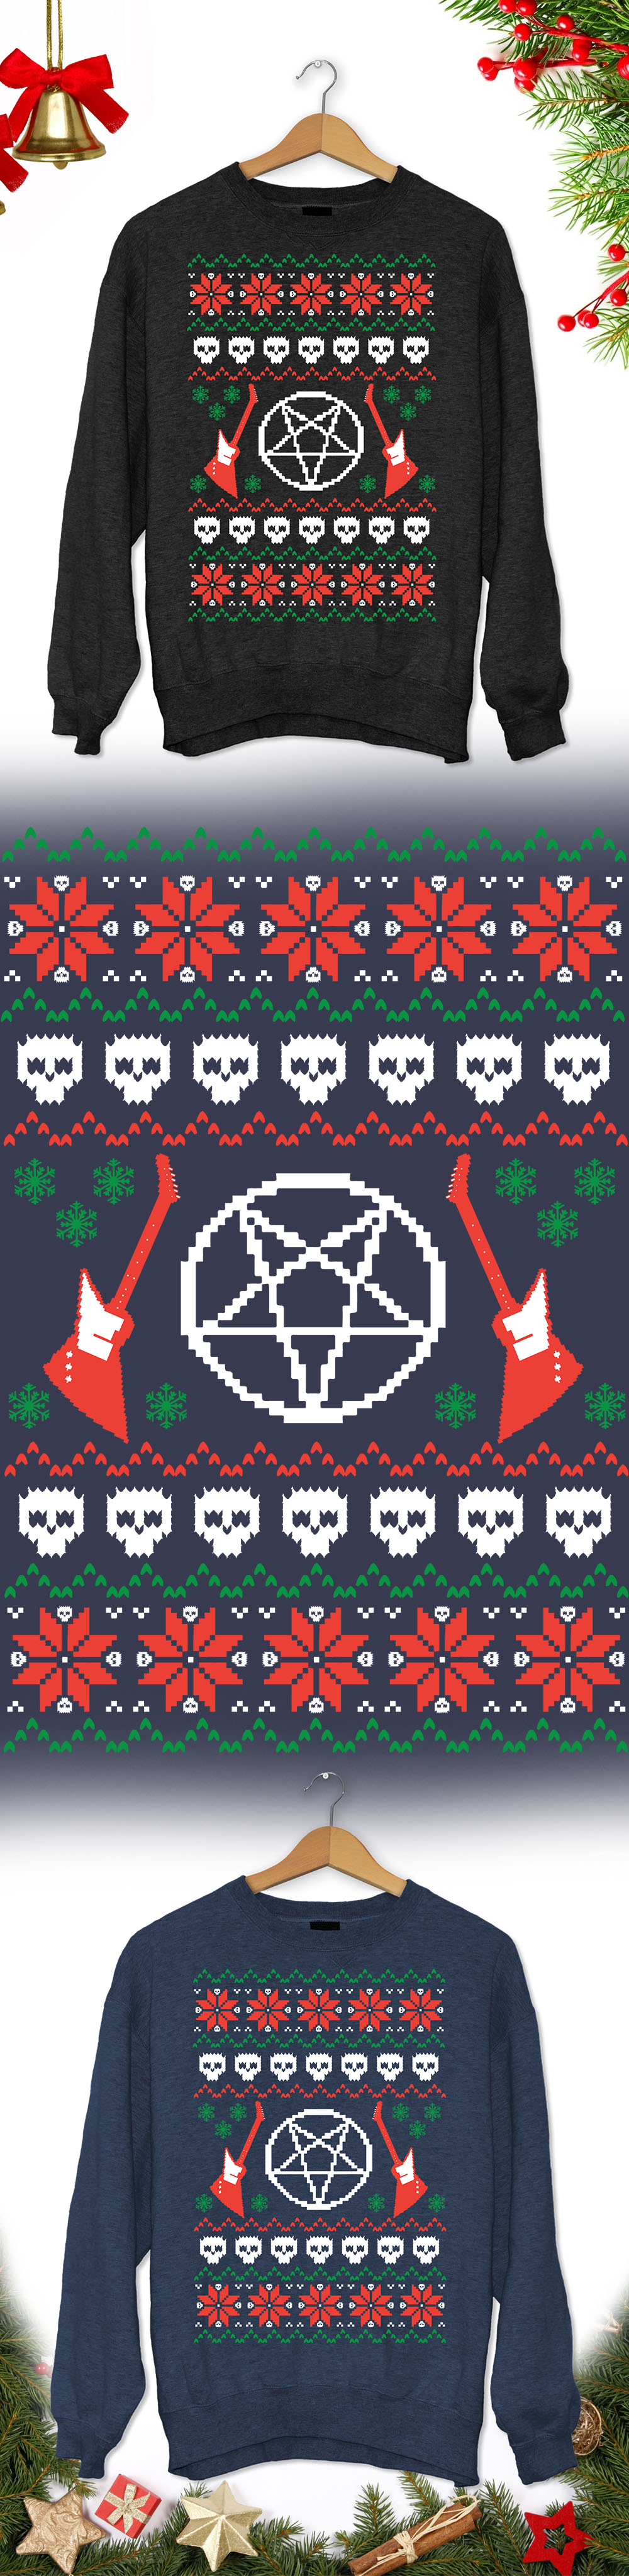 heavy metal christmas sweater limited edition order 2 or more for friendsfamily save on shipping makes a great gift - Heavy Metal Ugly Christmas Sweaters